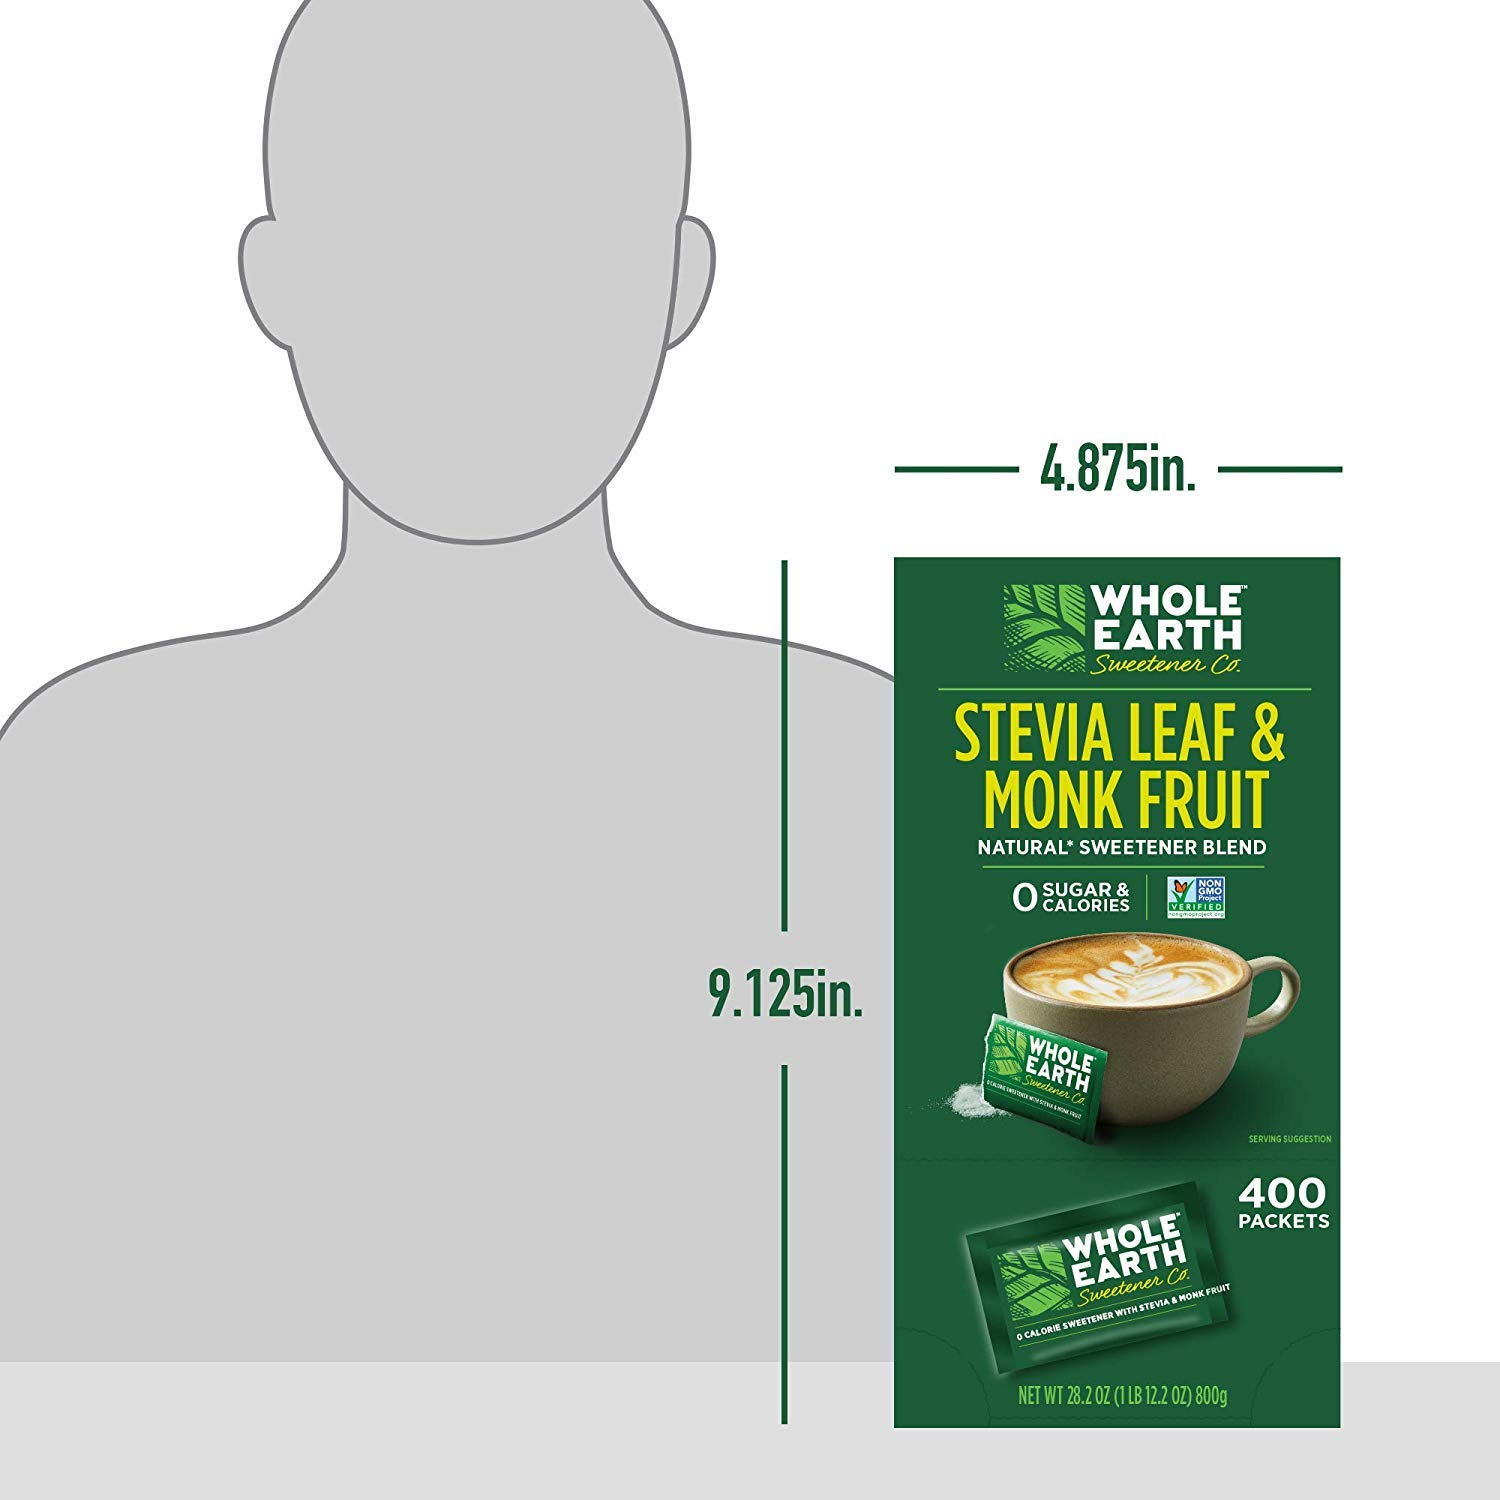 WHOLE EARTH SWEETENER Stevia Leaf and Monk Fruit Sweetener, Erythritol Sweetener, Sugar Substitute, Zero Calorie Sweetener, 400 Stevia Packets (400 Stevia Packets (Count of 2))